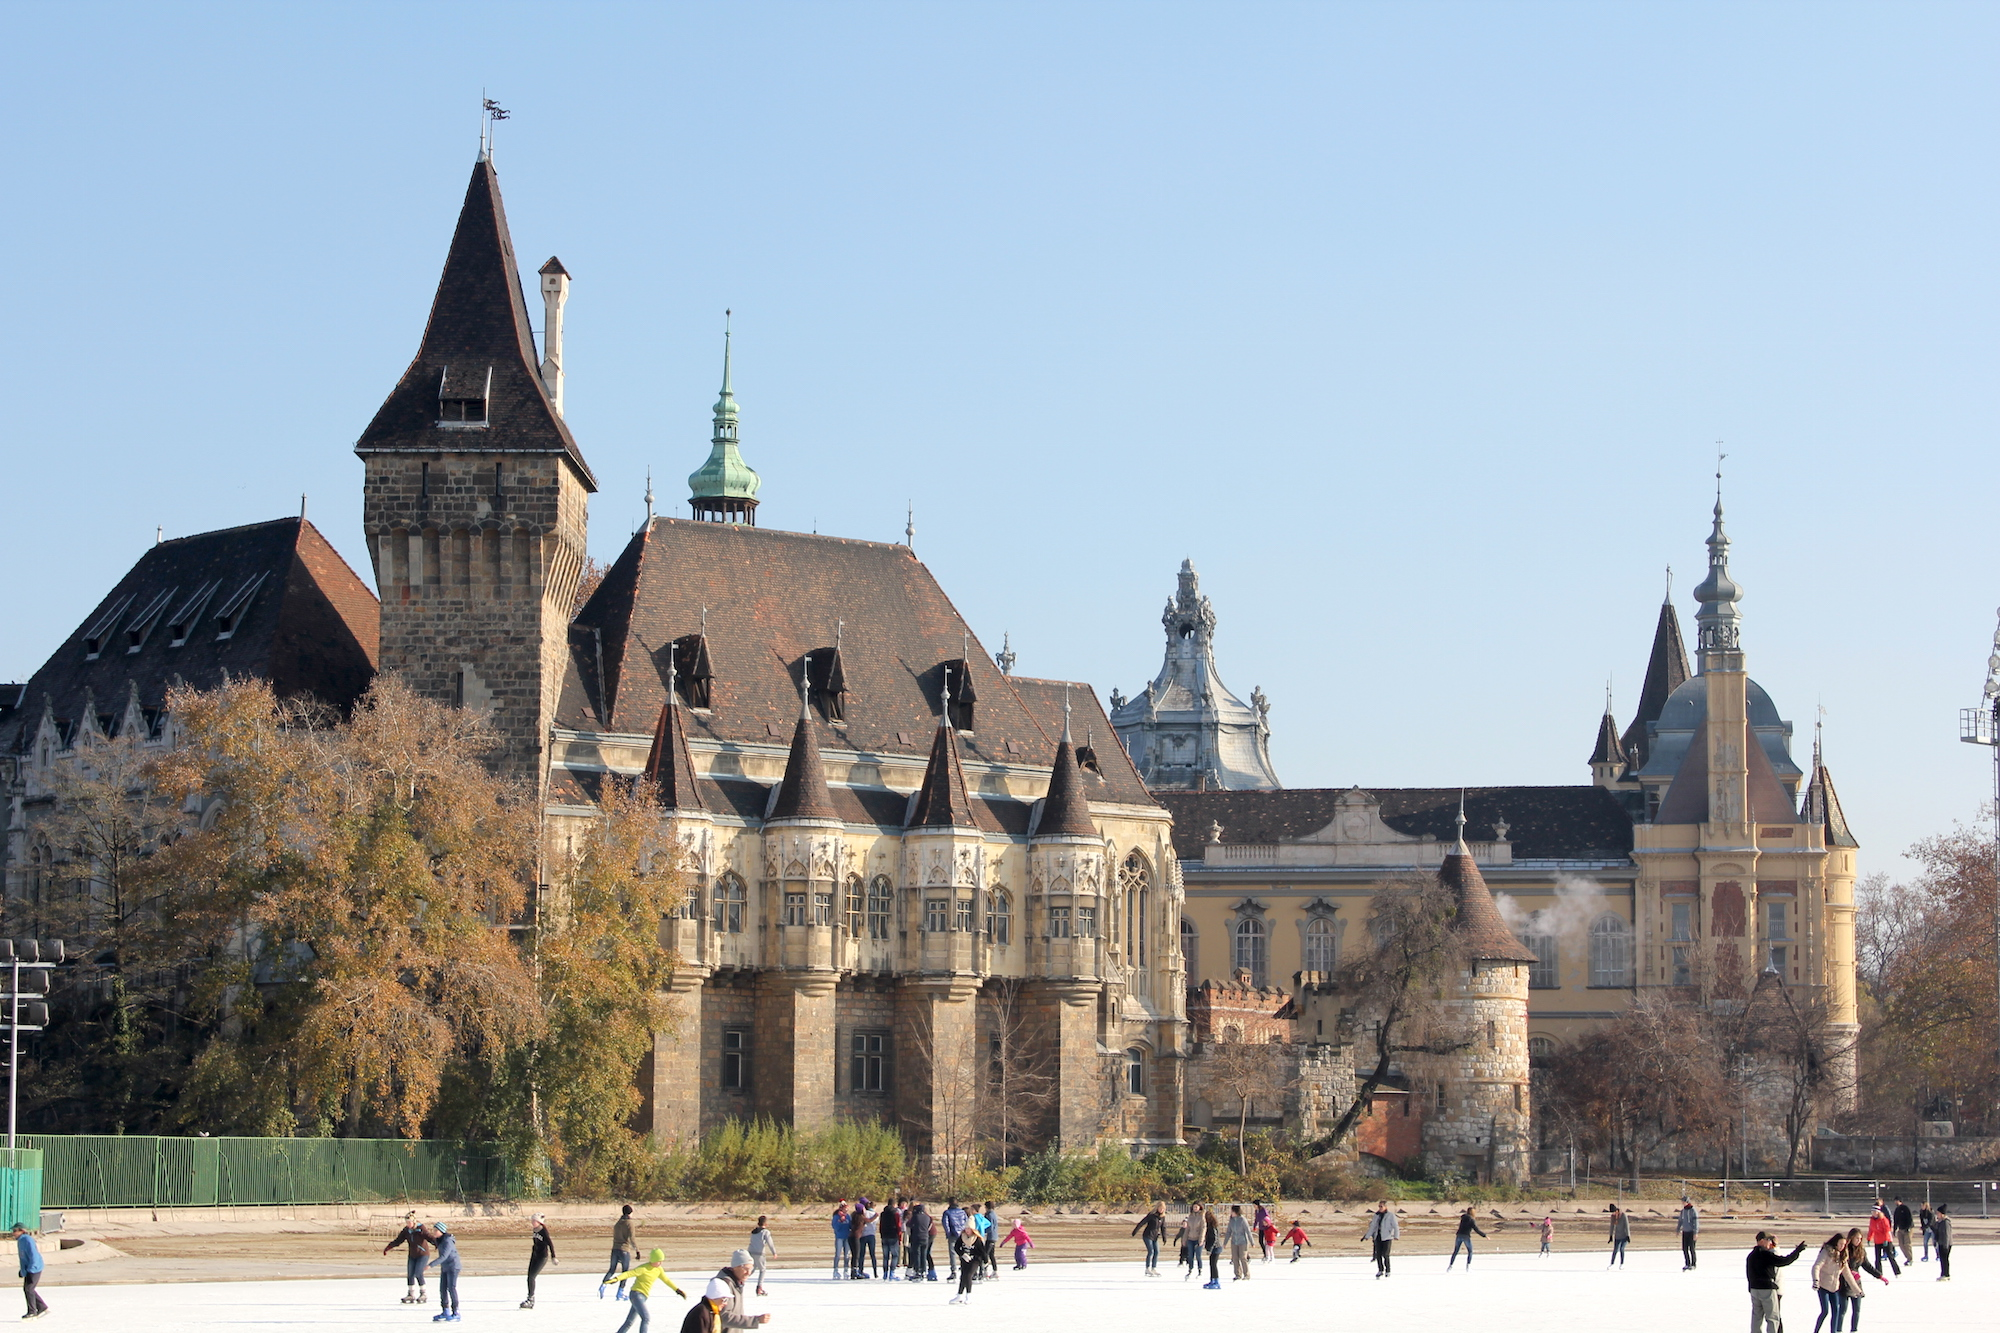 Ice skating in front of the castle of Vajdahunyad